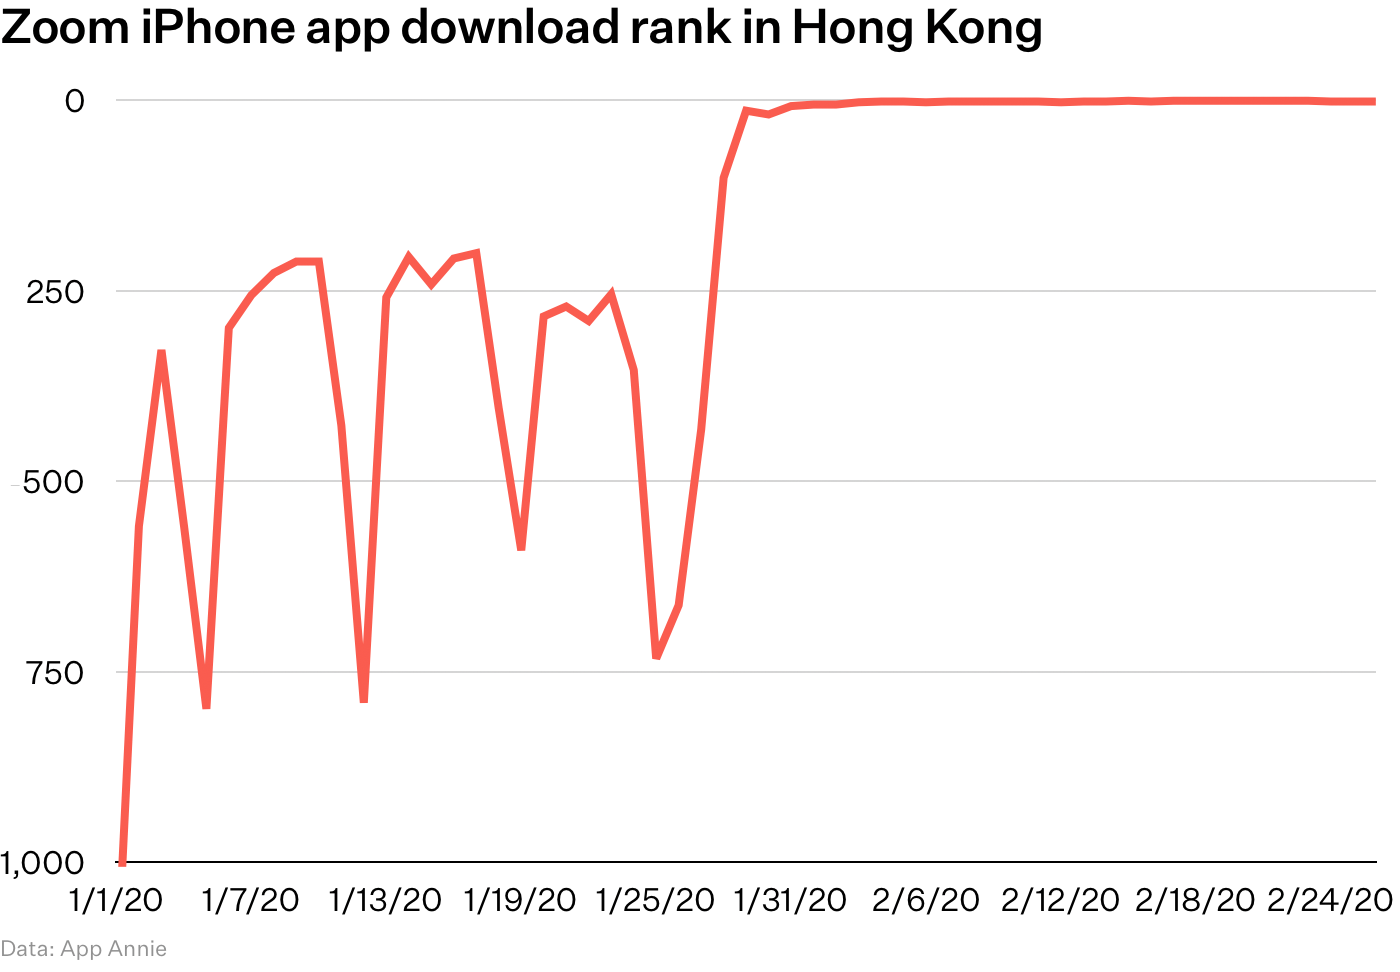 Chart: Zoom iPhone app download rank in Hong Kong